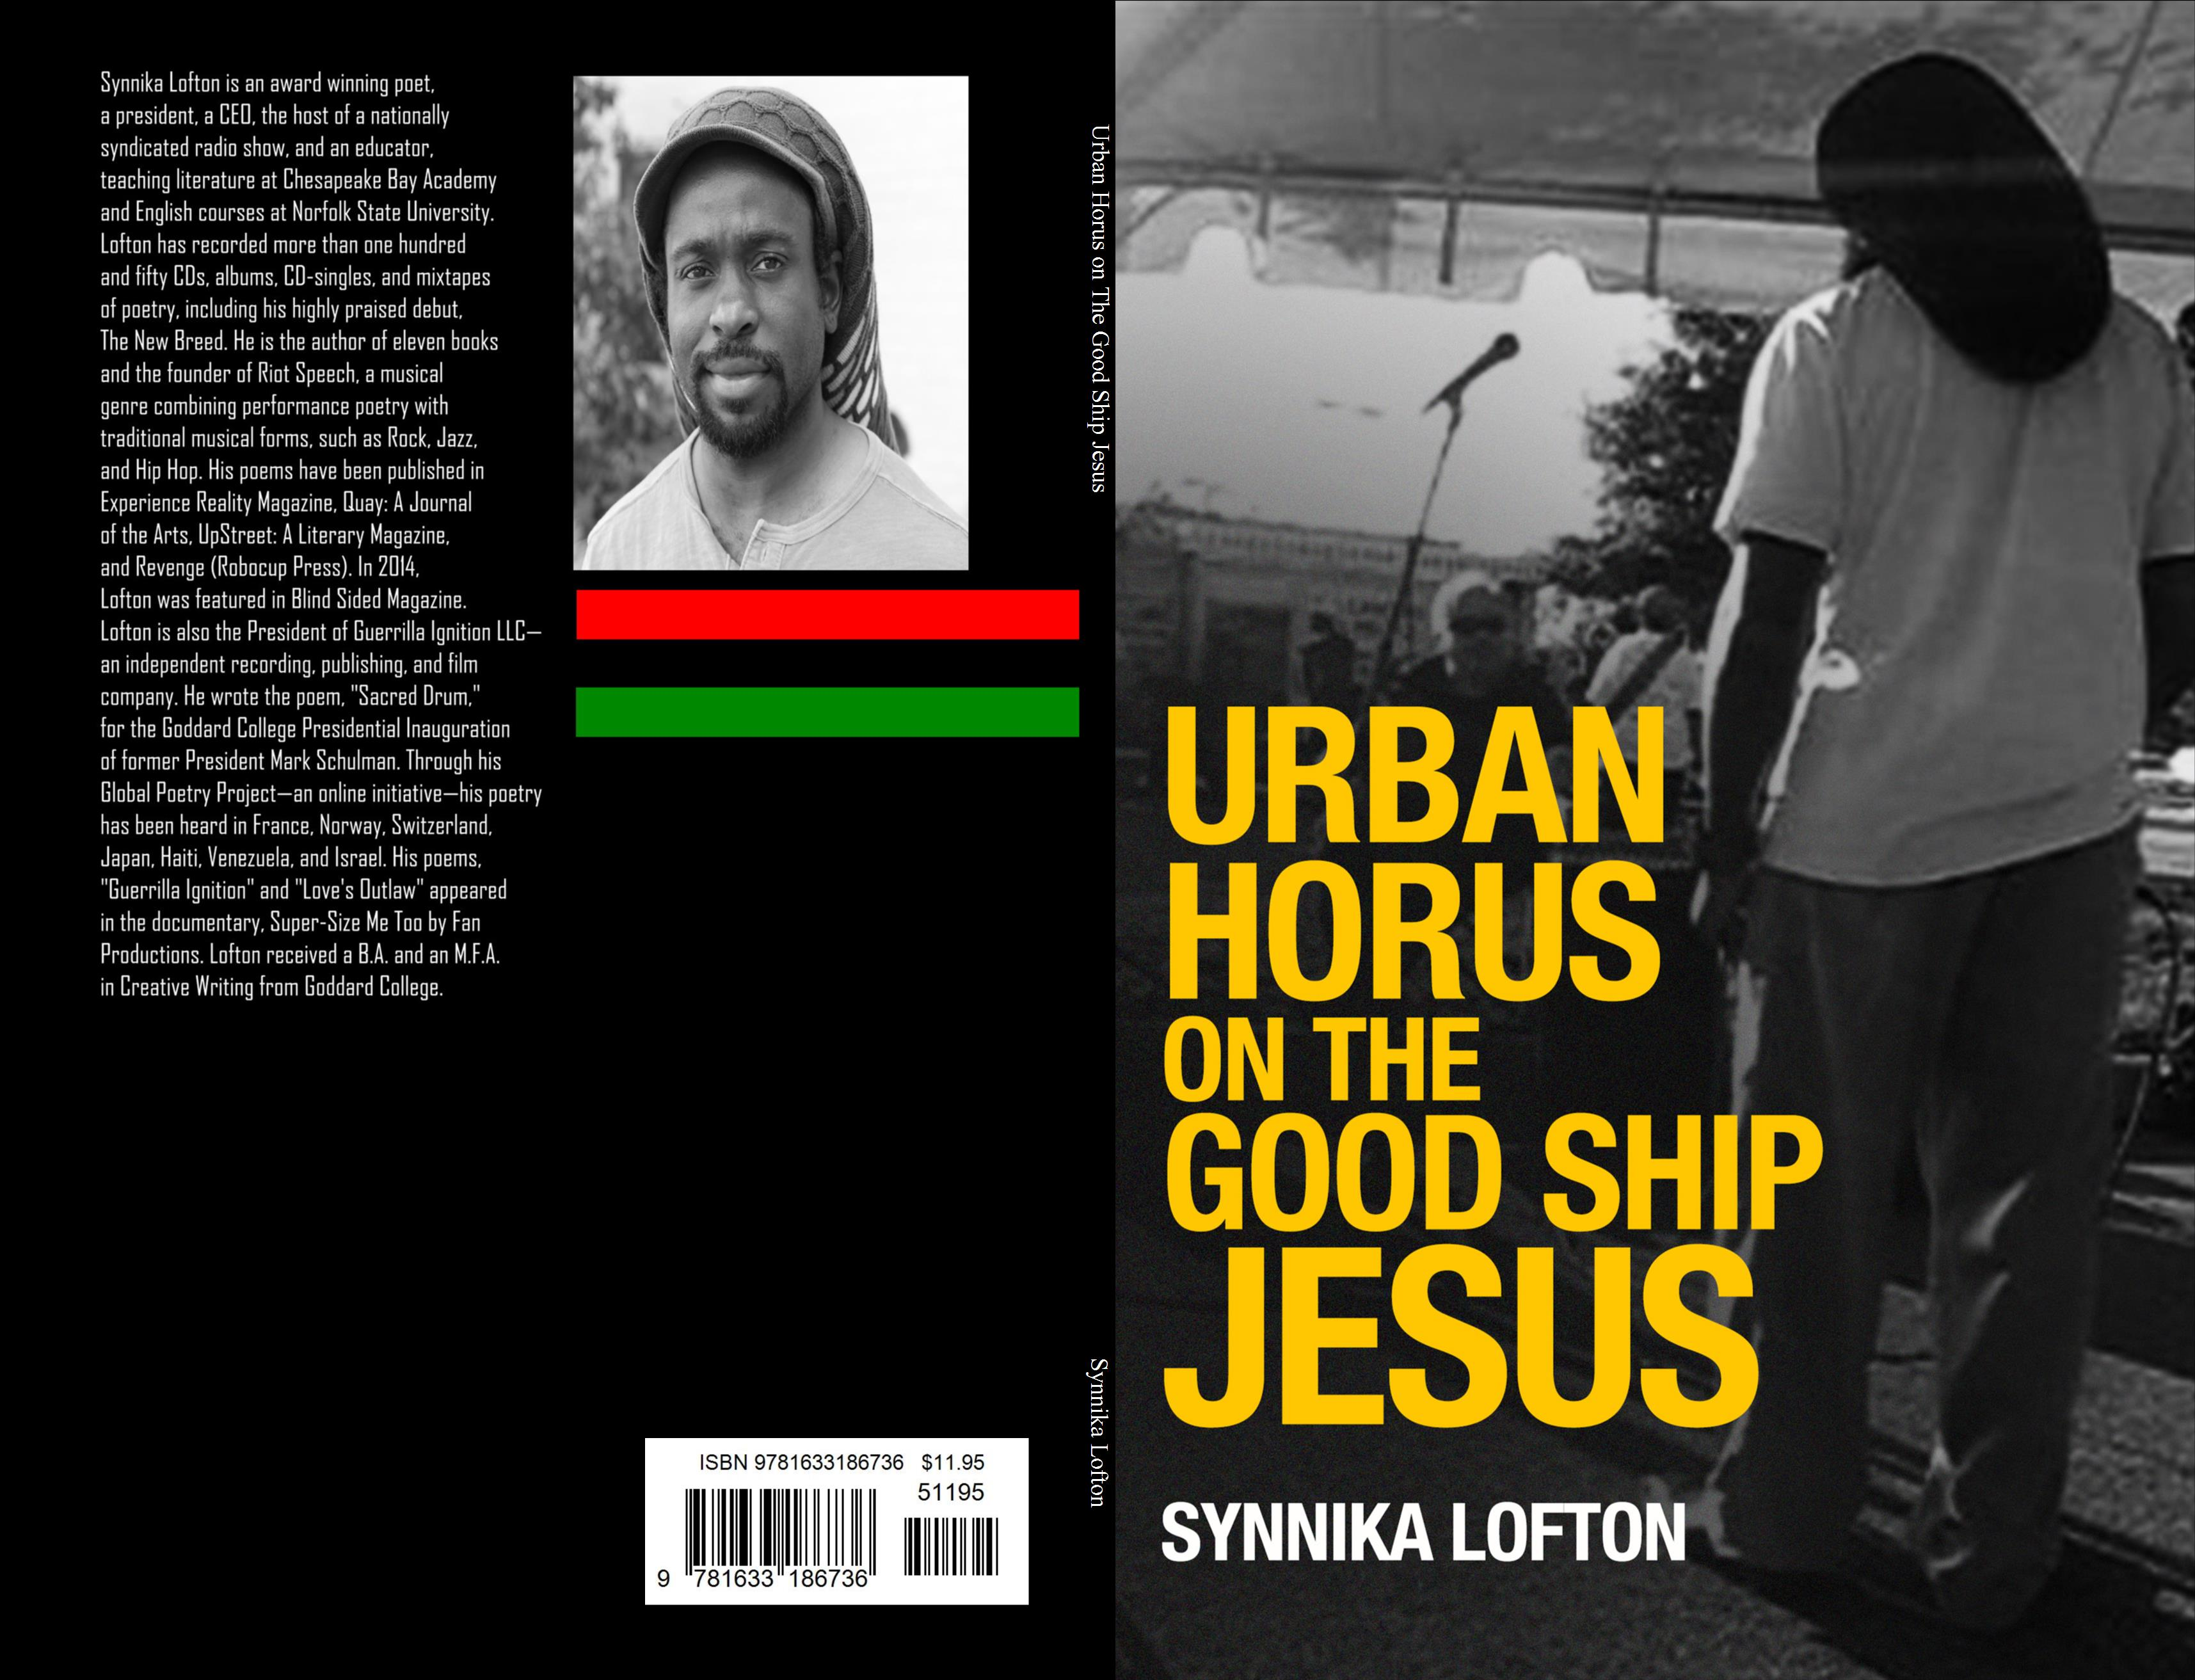 Urban Horus on The Good Ship Jesus cover image